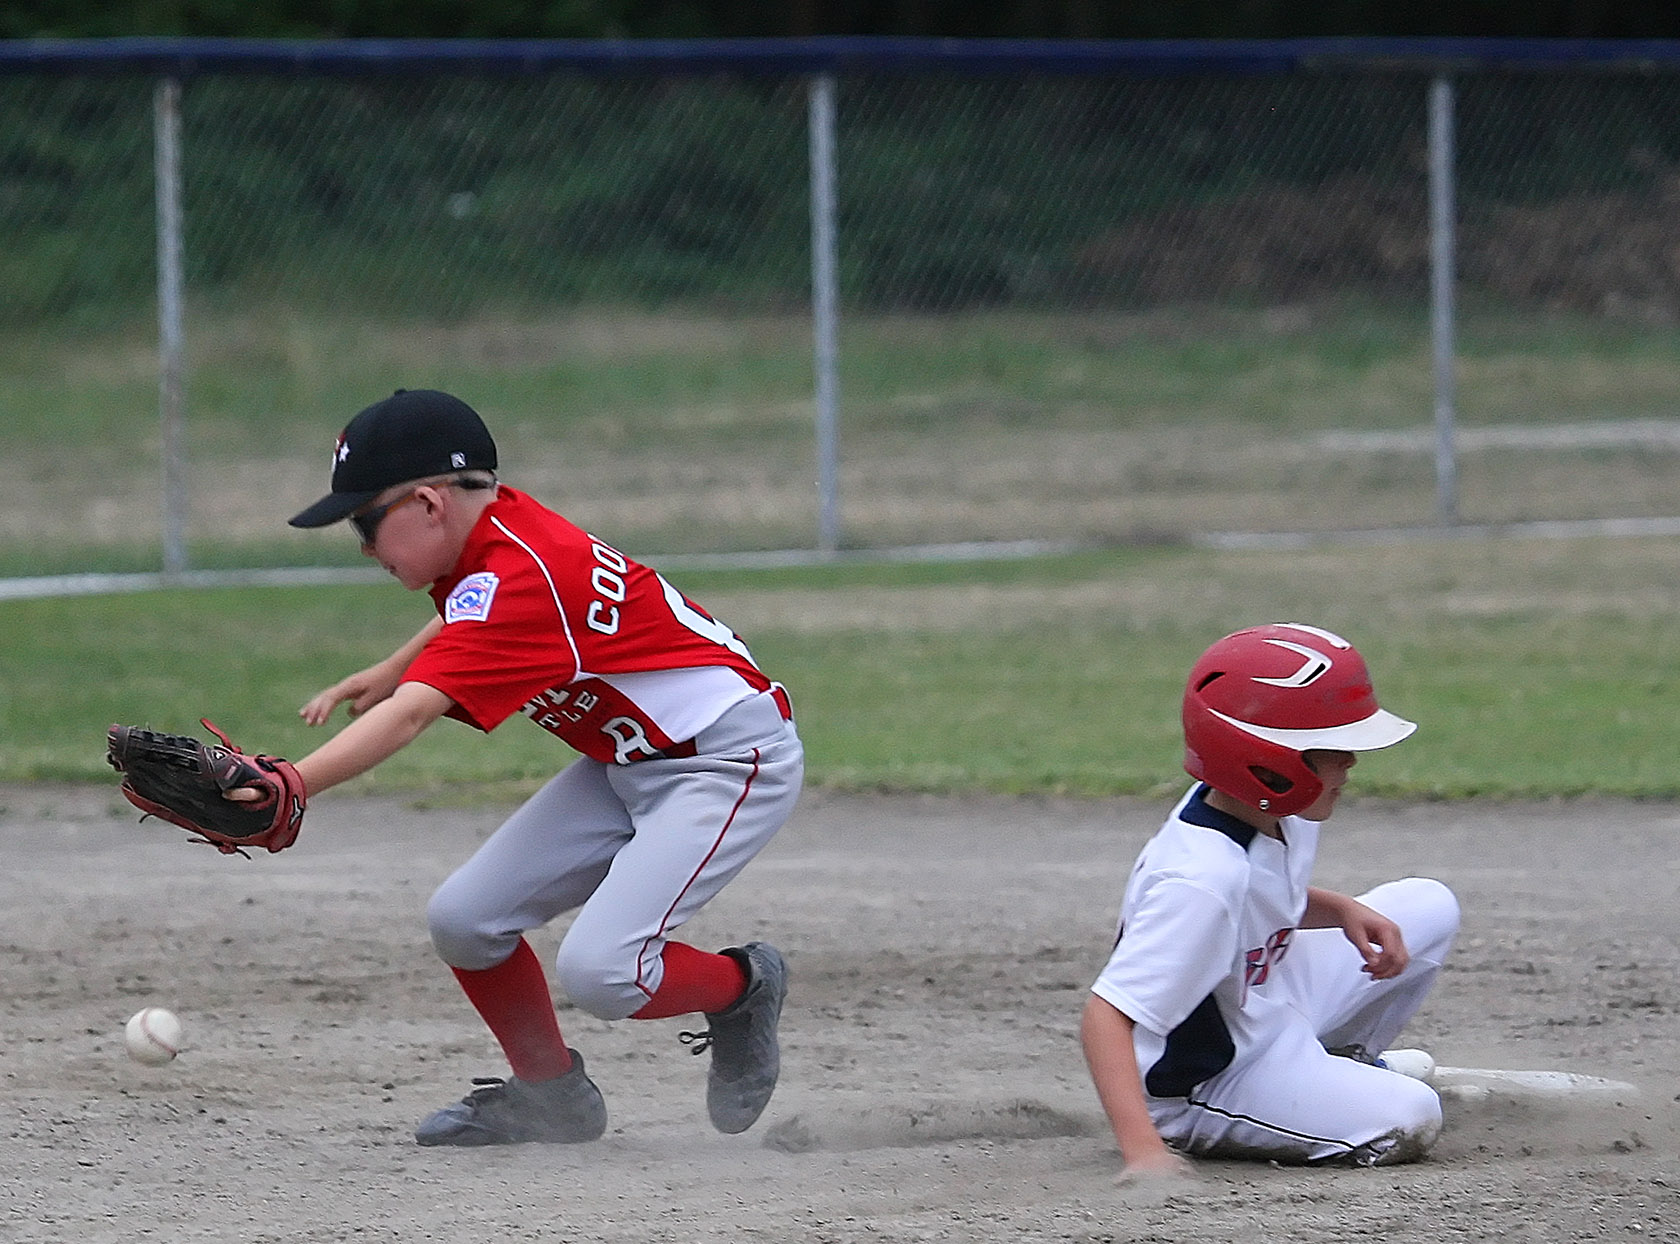 Max Cooper of West Seattle goes after the ball as South Highline Nationals Jayce Fitzgerald gets back to second.